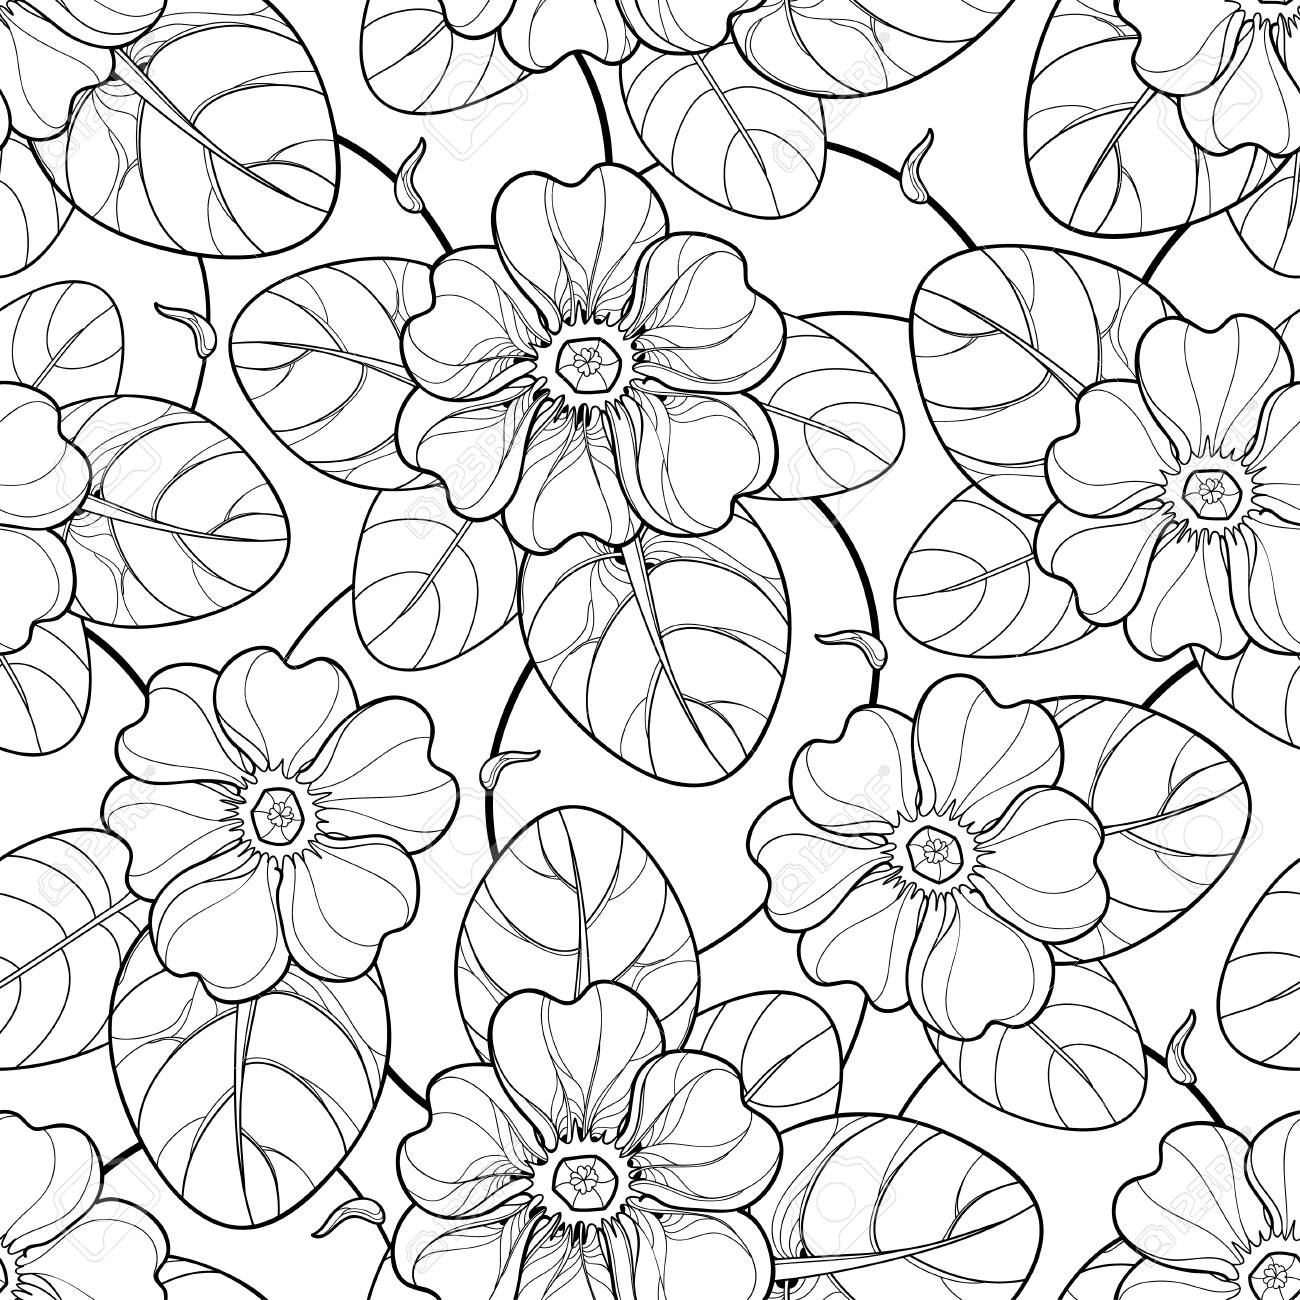 Spring Design And Coloring Book Seamless Pattern With Outline Primula Or Primrose Flower Leaf In Black On The White Background